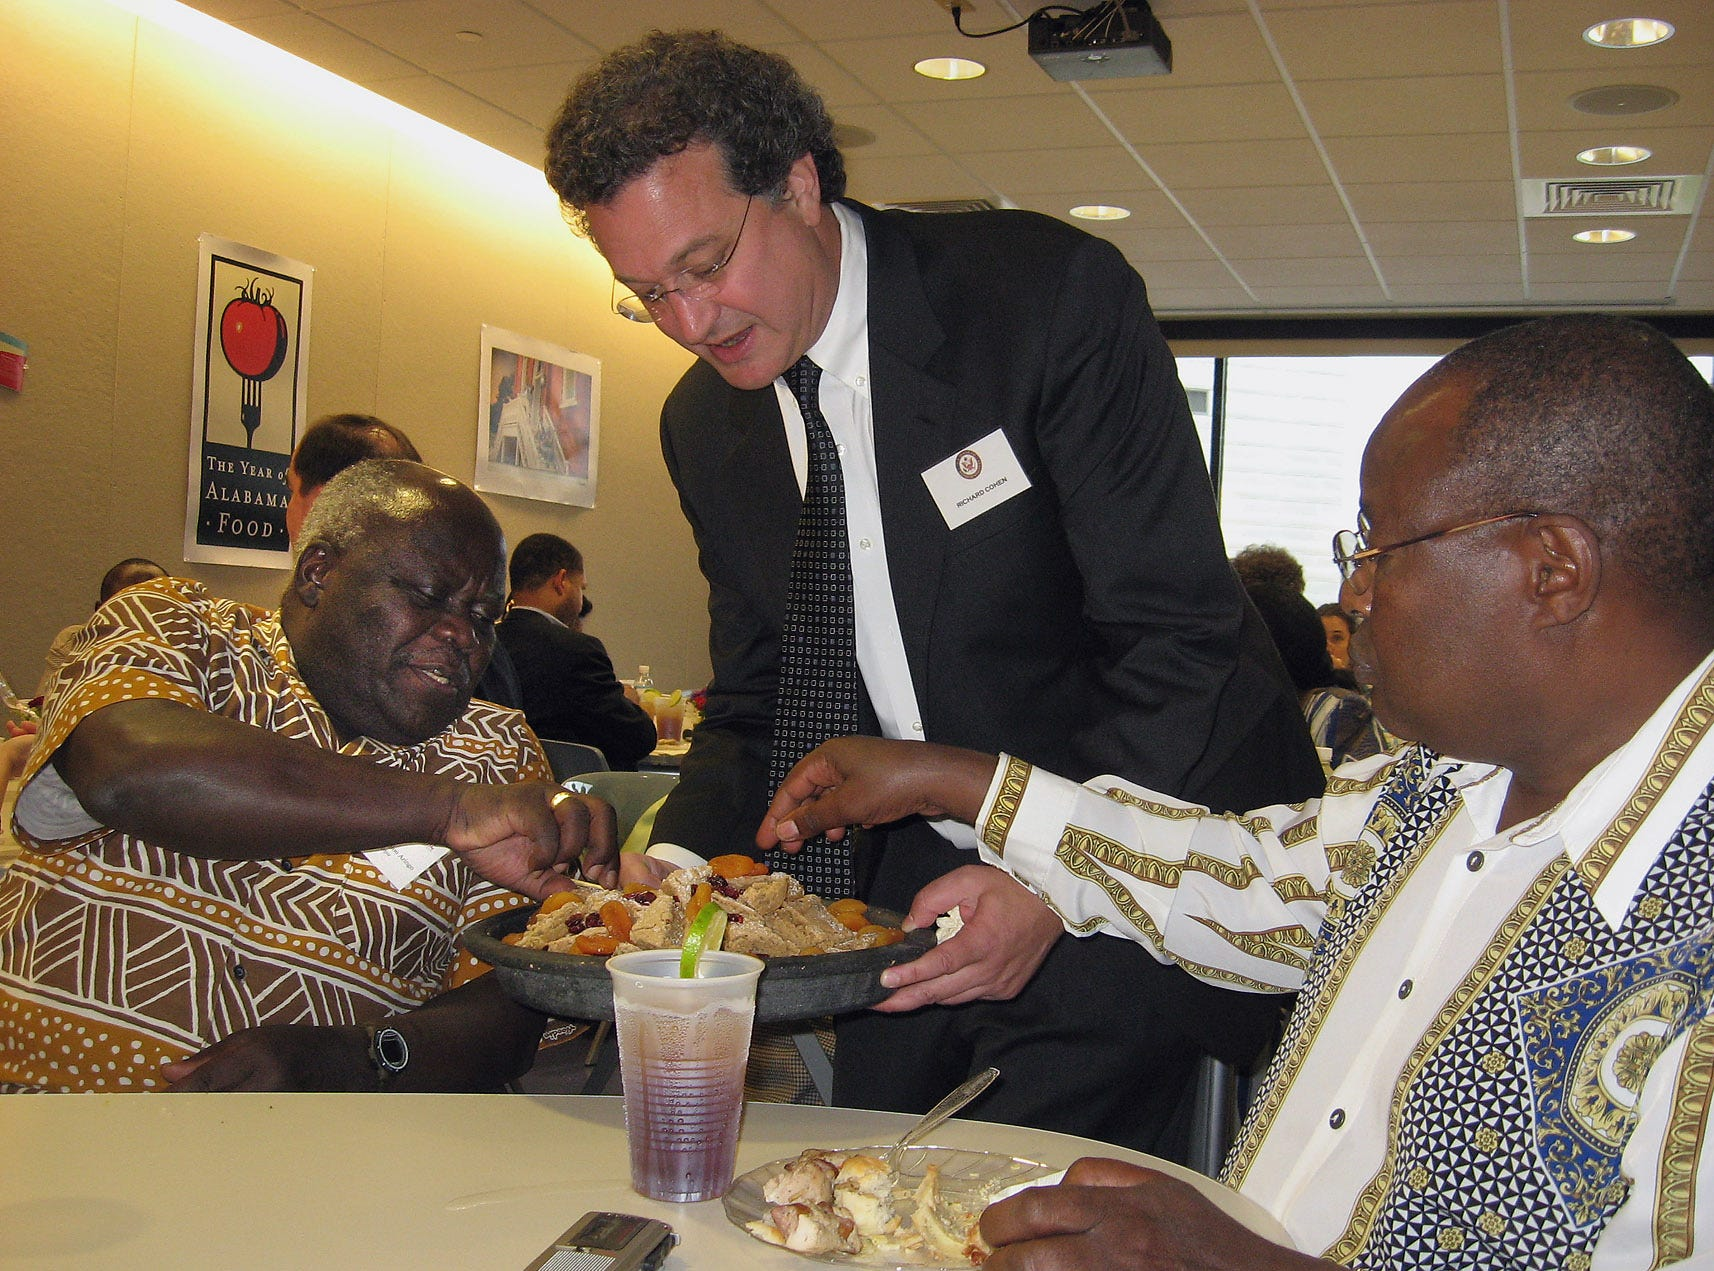 Richard Cohen of the Southern Poverty Law Center serves dessert to K.F.X. ole Kaparo, (cq) right, speaker of the Kenyan National Assembly and assembly colleague Peter Oloo Aringo, (cq), Saturday, Sept. 2, 2006, at the SPLC Civil Rights Museum. (Montgomery Advertiser, Alvin Benn)